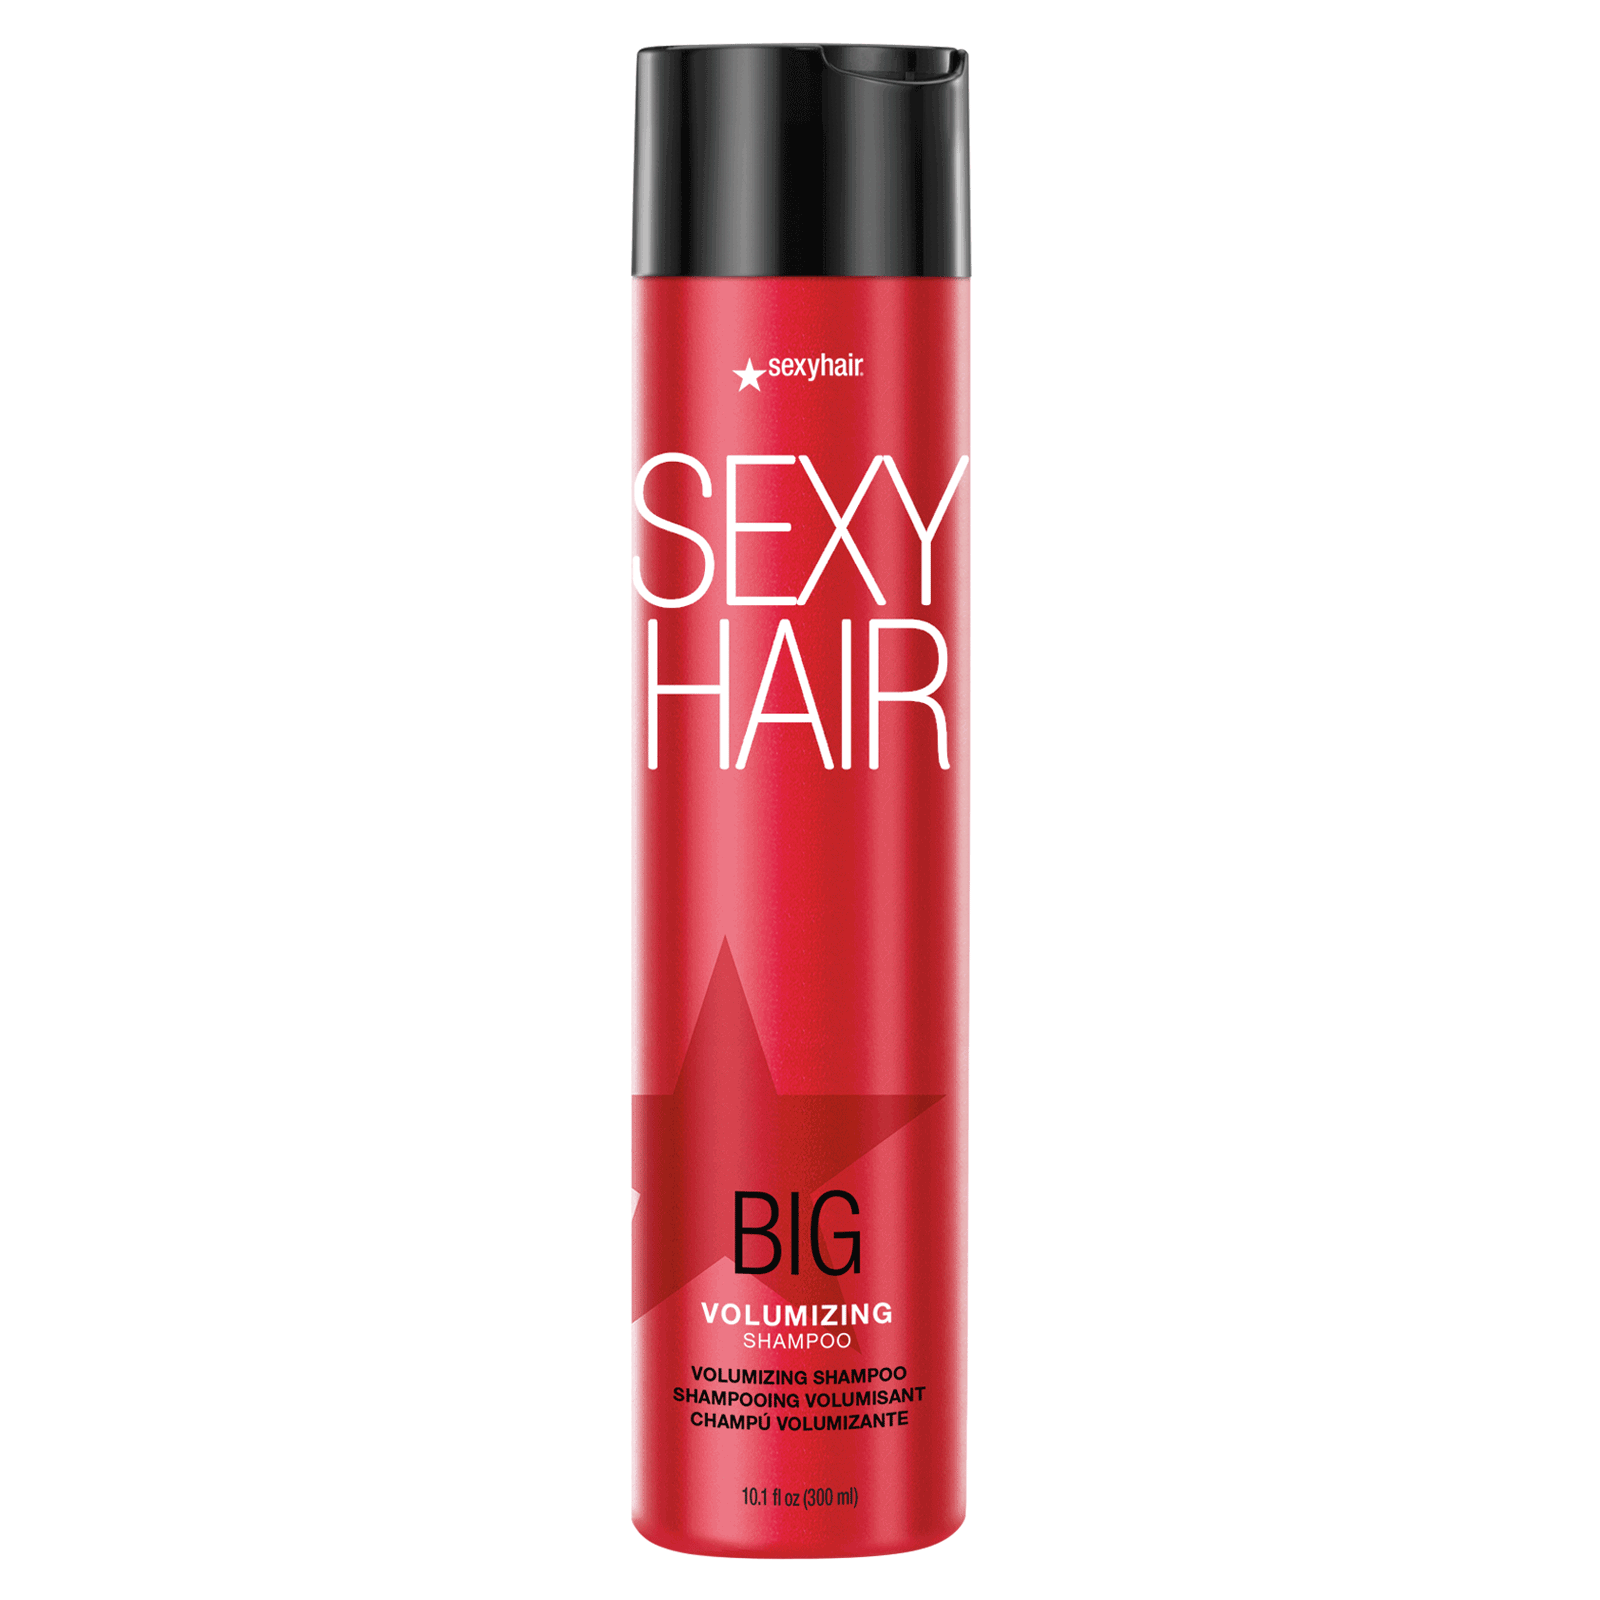 Bigsexyhair shampoo and conditioner